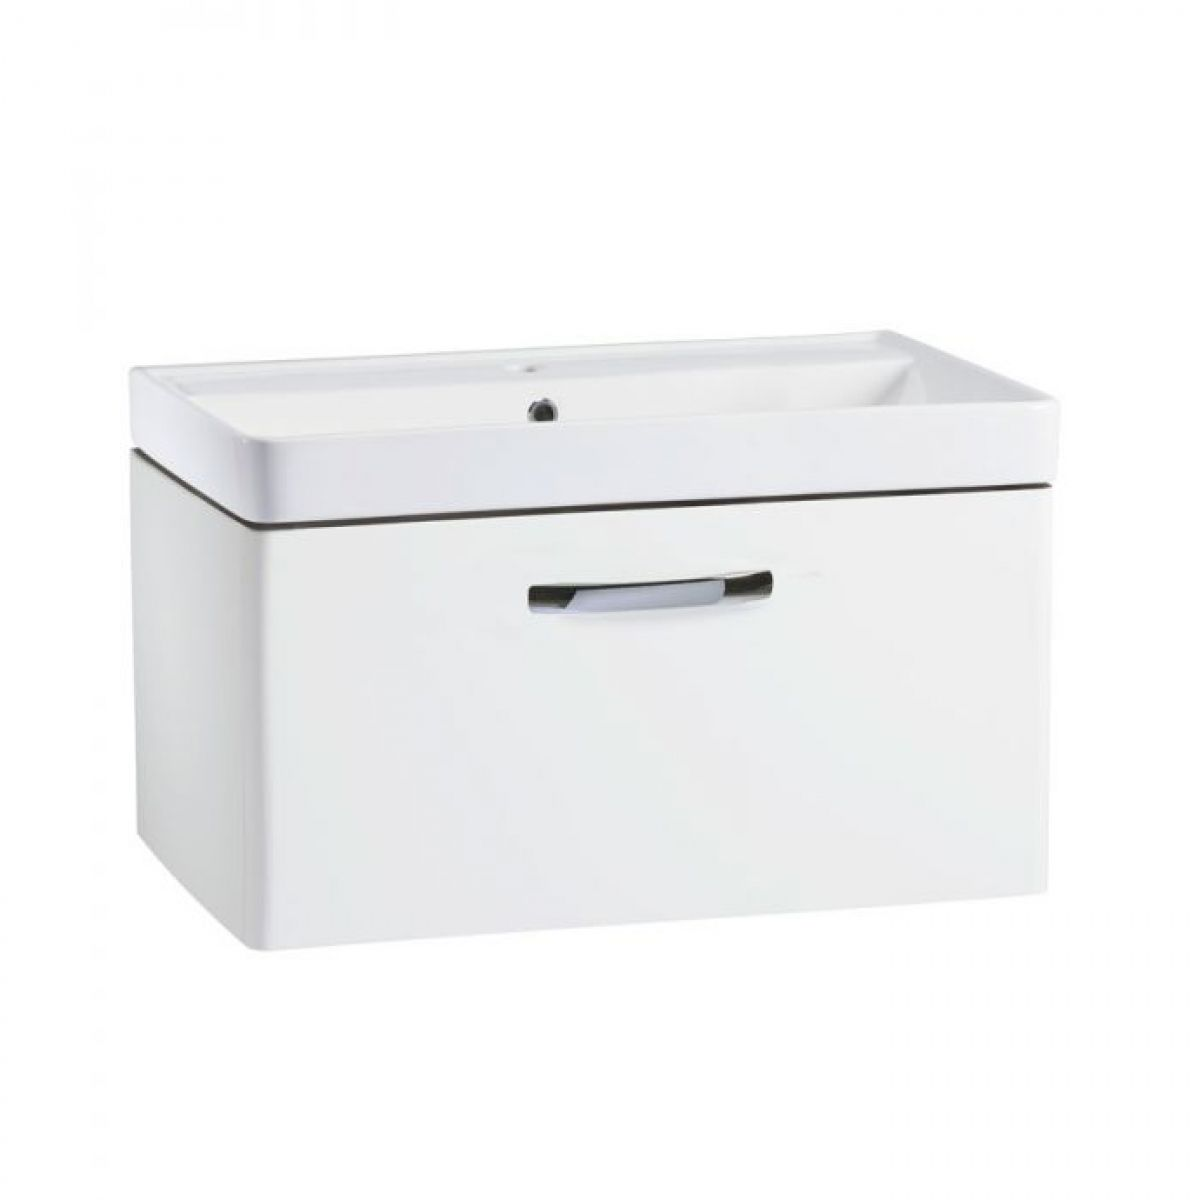 Tavistock Compass Gloss White Wall Mounted Vanity Unit 800mm